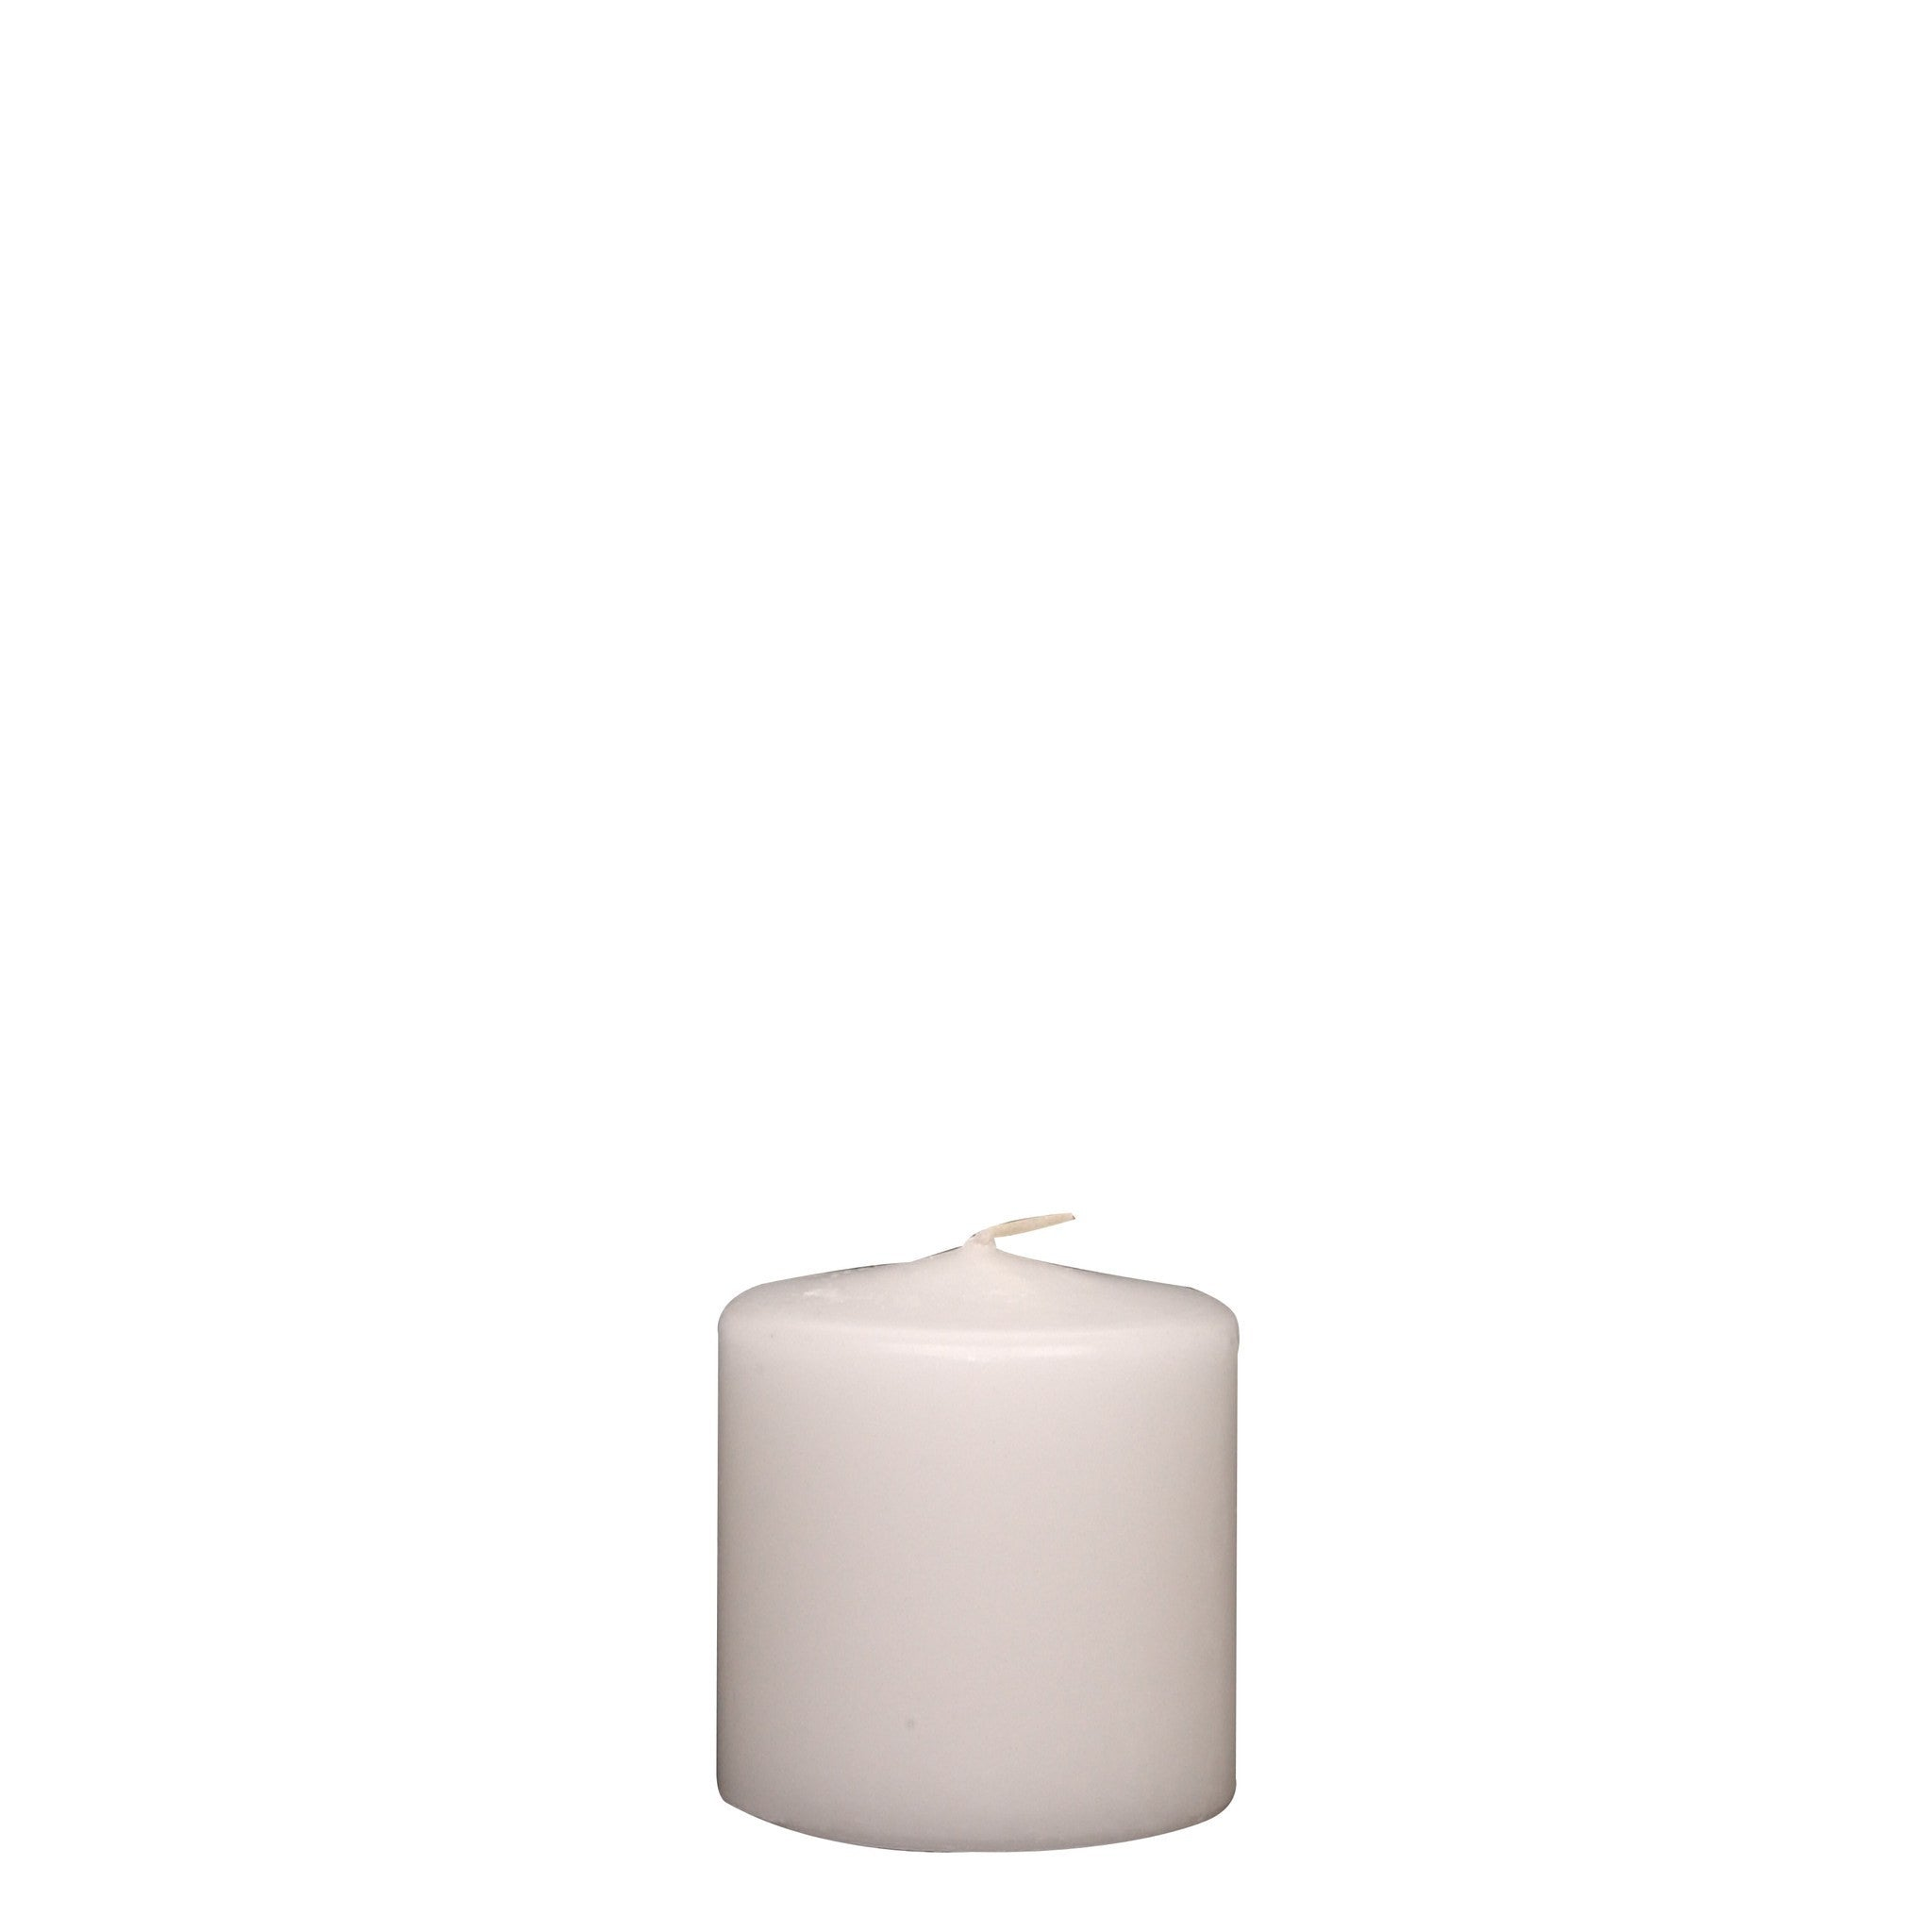 3x3 Unscented White Pillar Candle - Candlemart.com - 3